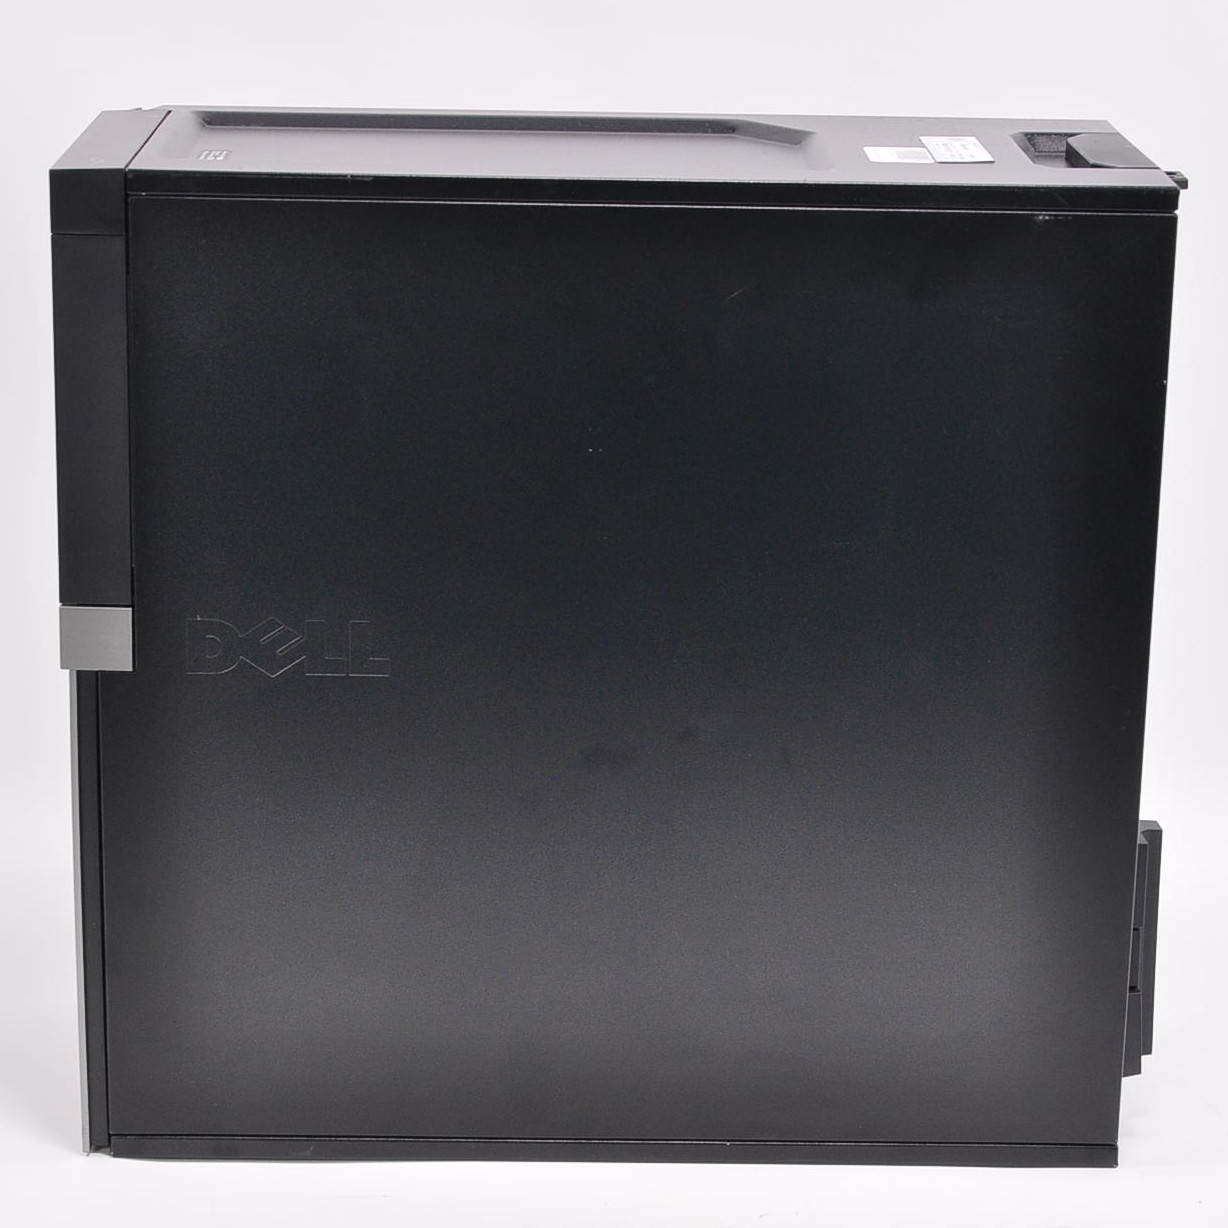 Refurbished Dell optiplex 980 Mini Tower Quad Core i7 - Side case view